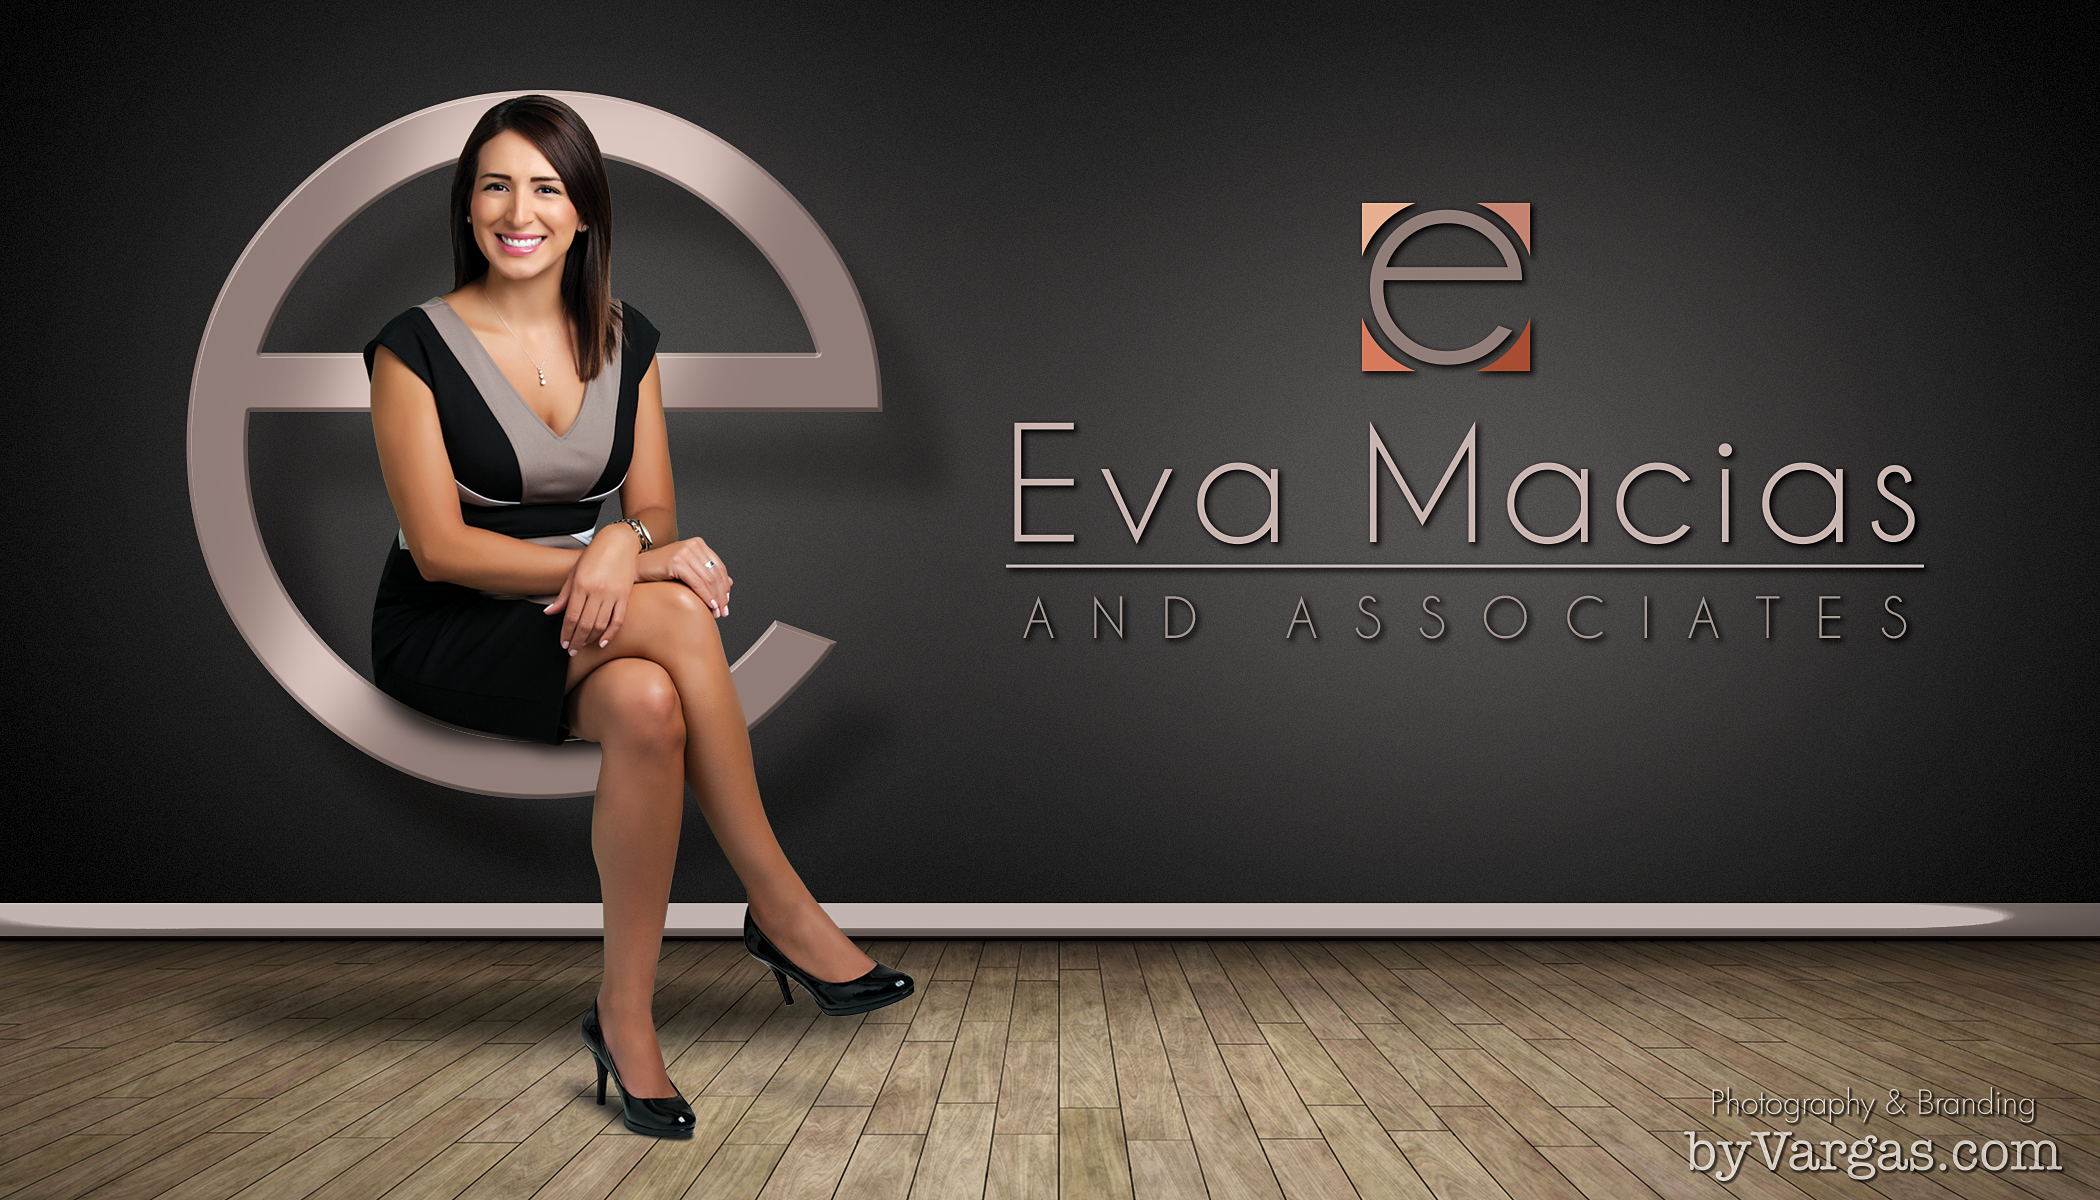 Eva Macias And Associates